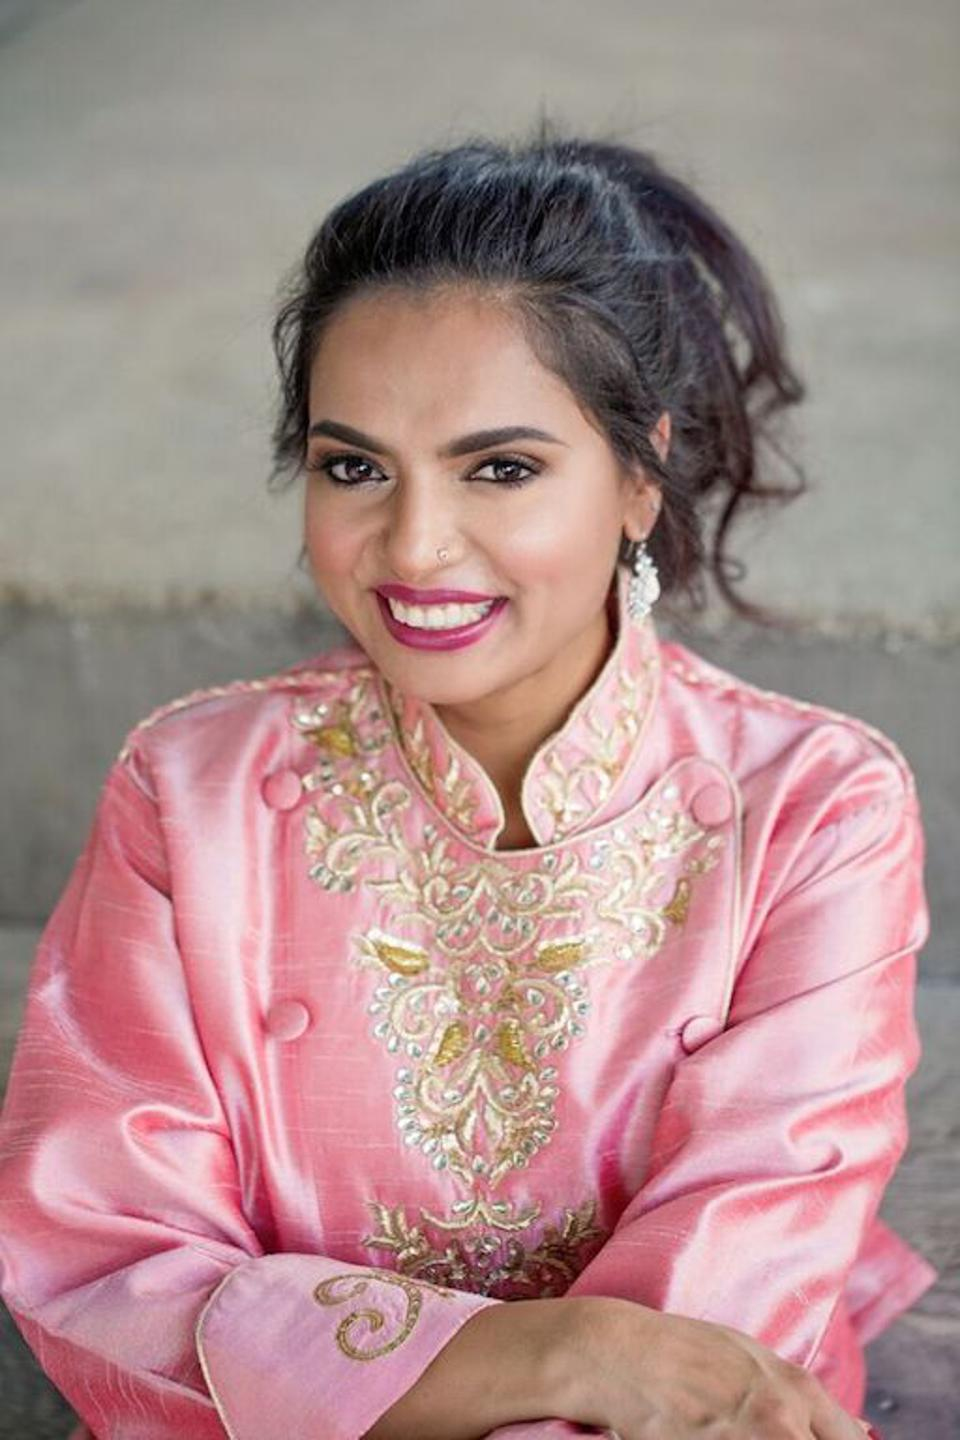 Maneet Chauhan, restaurant owner, and judge on Food Network's Chopped